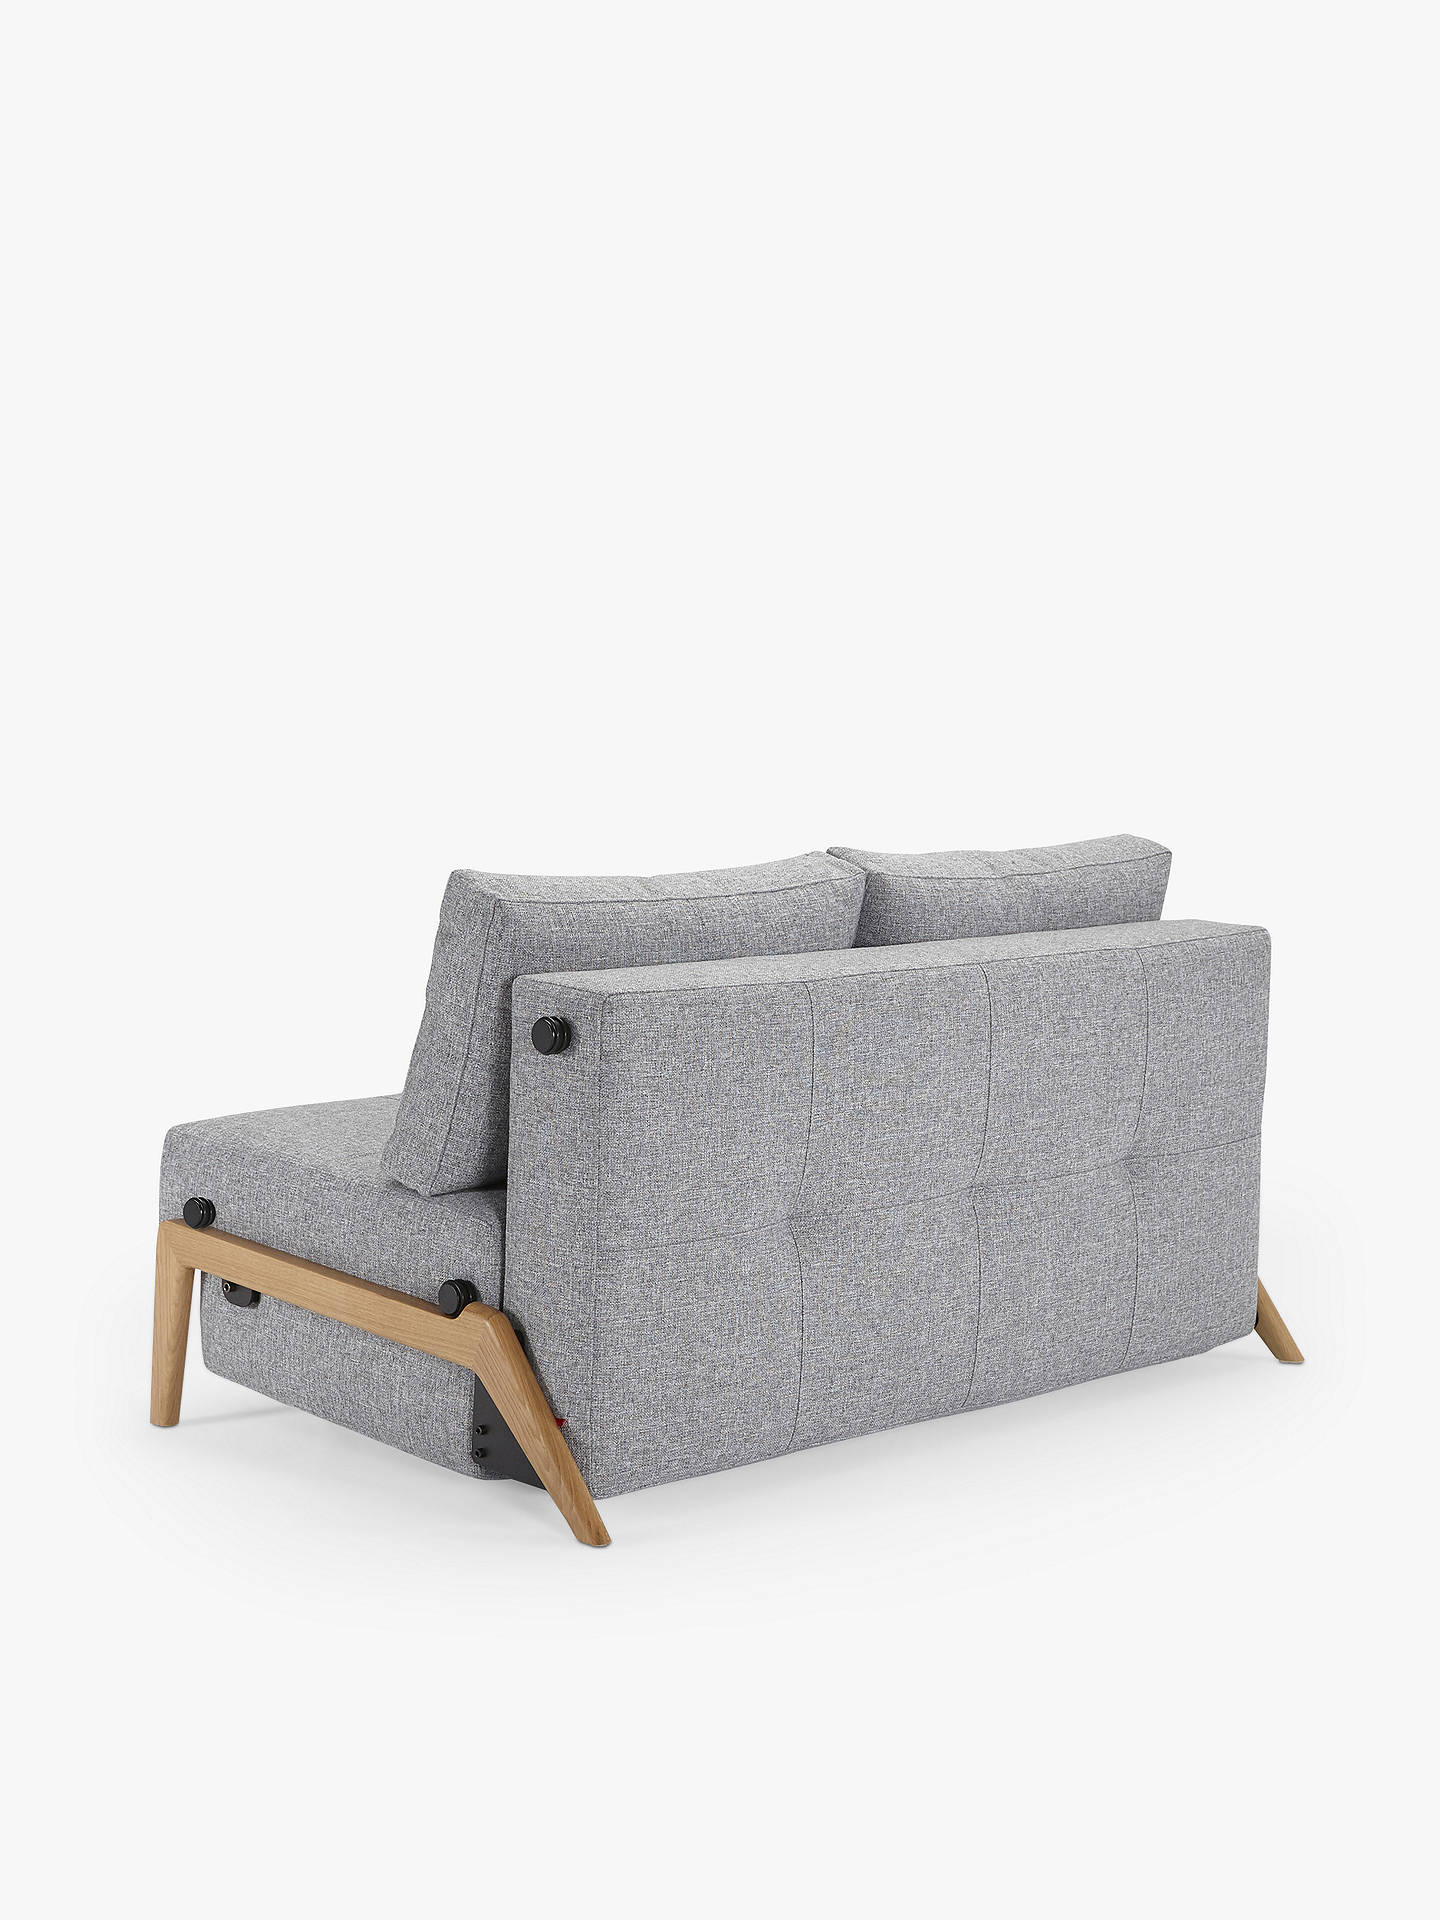 Enjoyable Innovation Living Cubed 140 Sofa Bed With Serpentine Sprung Gmtry Best Dining Table And Chair Ideas Images Gmtryco